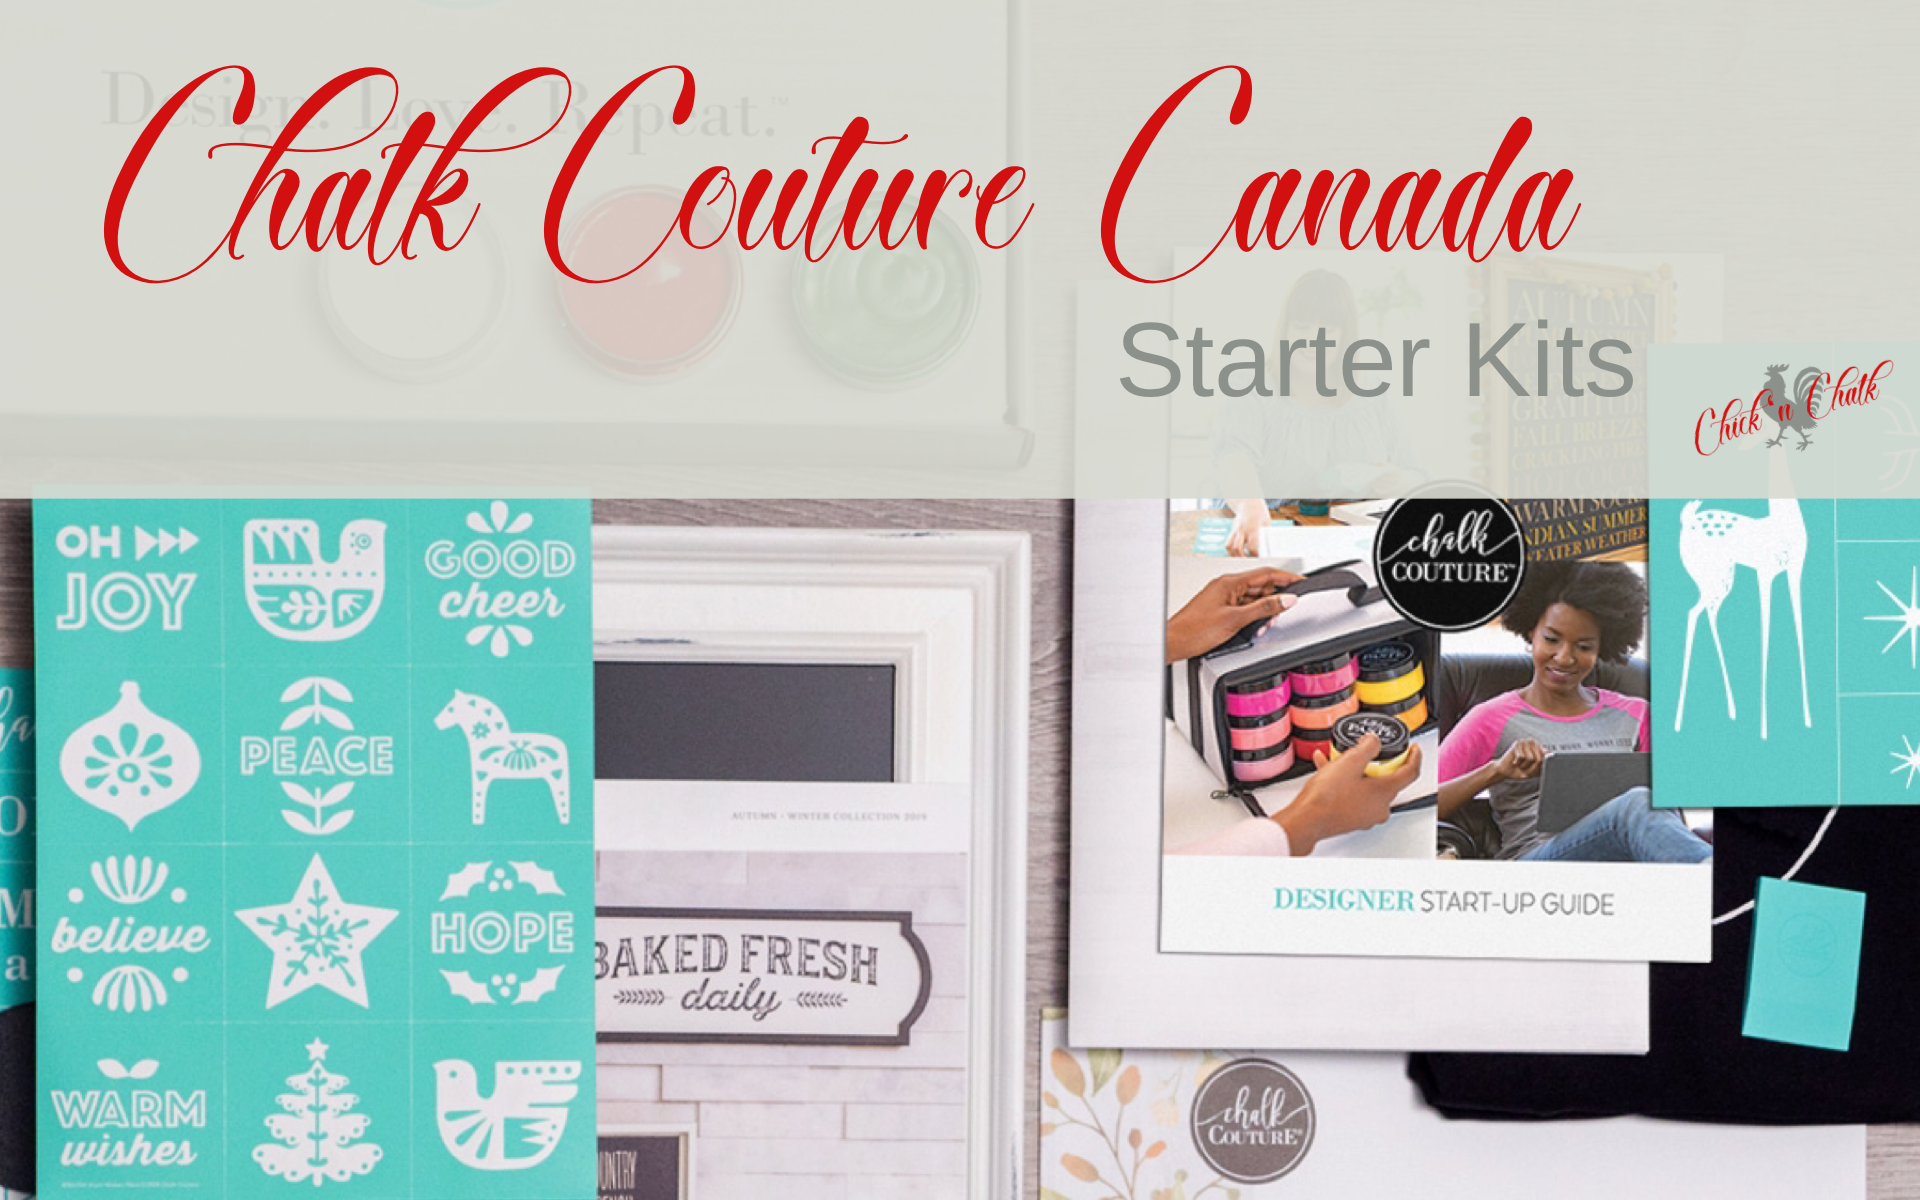 Chalk Couture Canada Starter kit